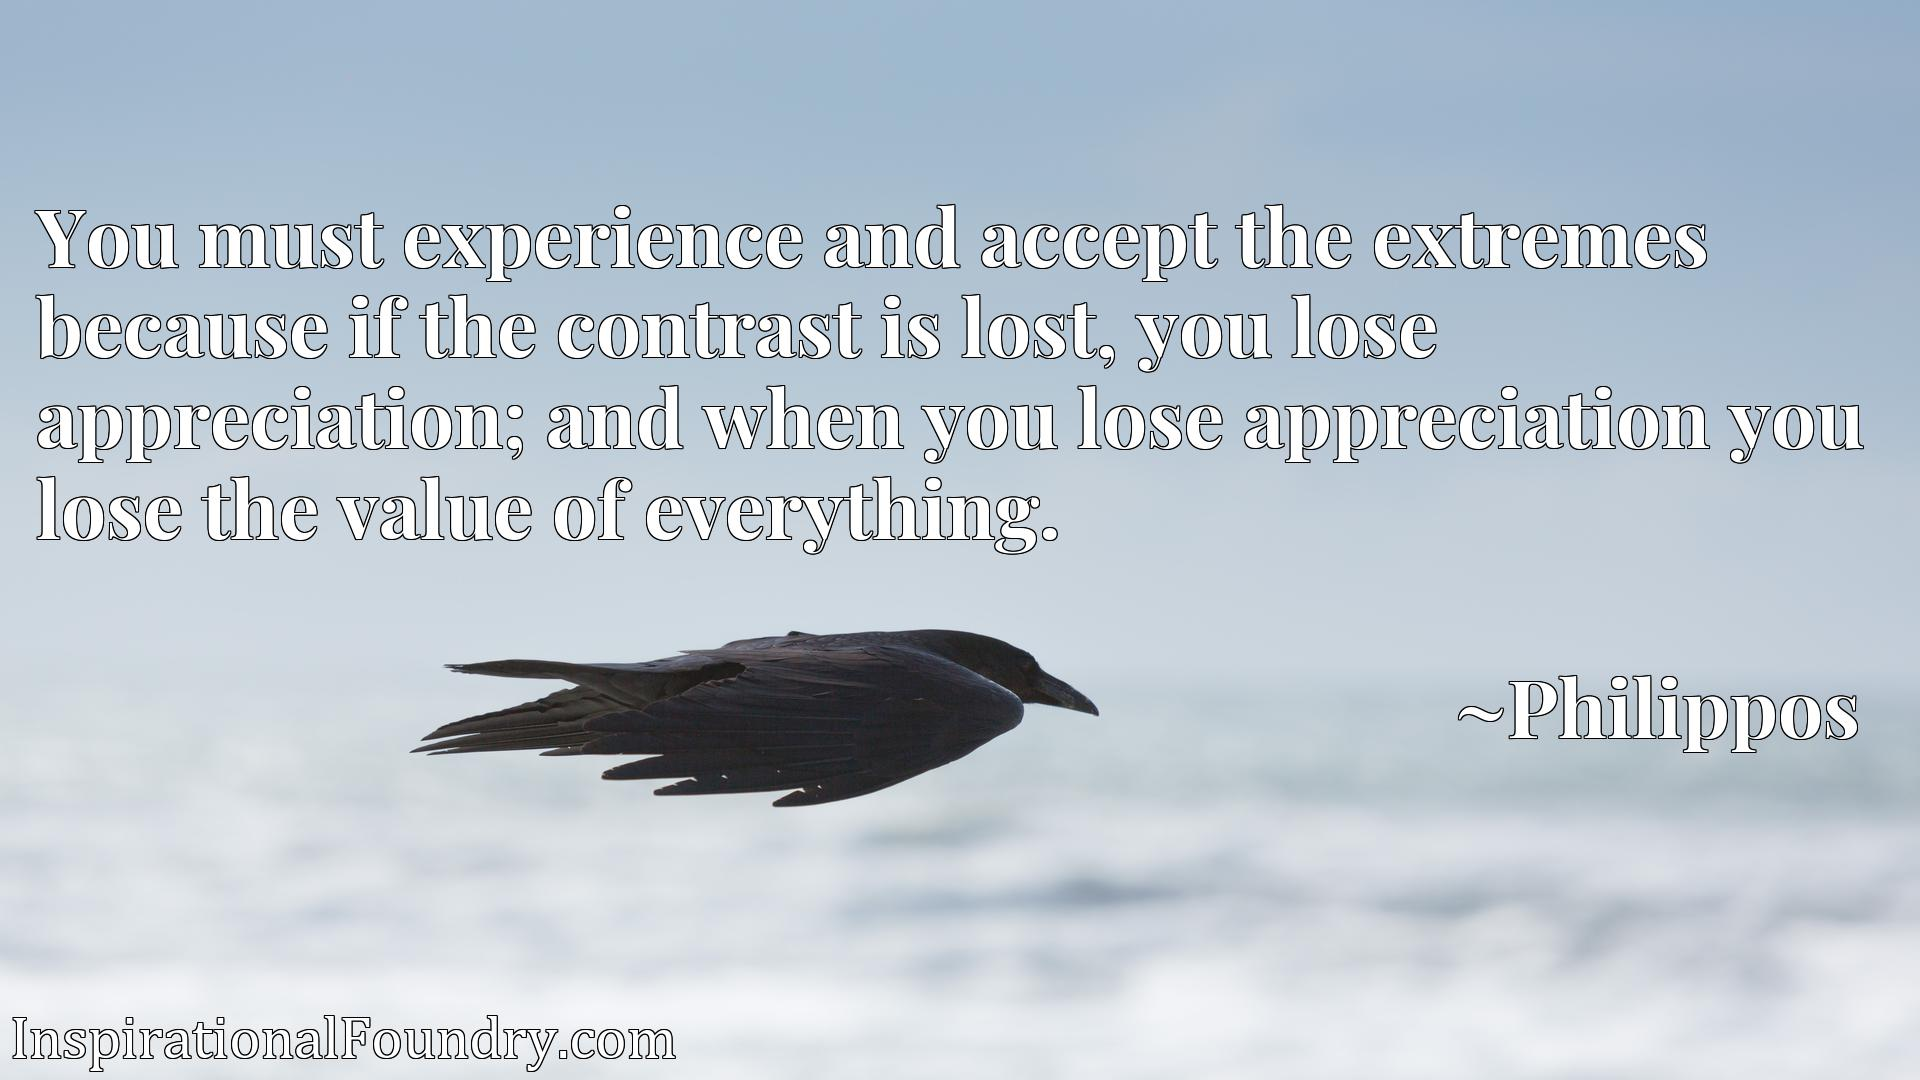 You must experience and accept the extremes because if the contrast is lost, you lose appreciation; and when you lose appreciation you lose the value of everything.